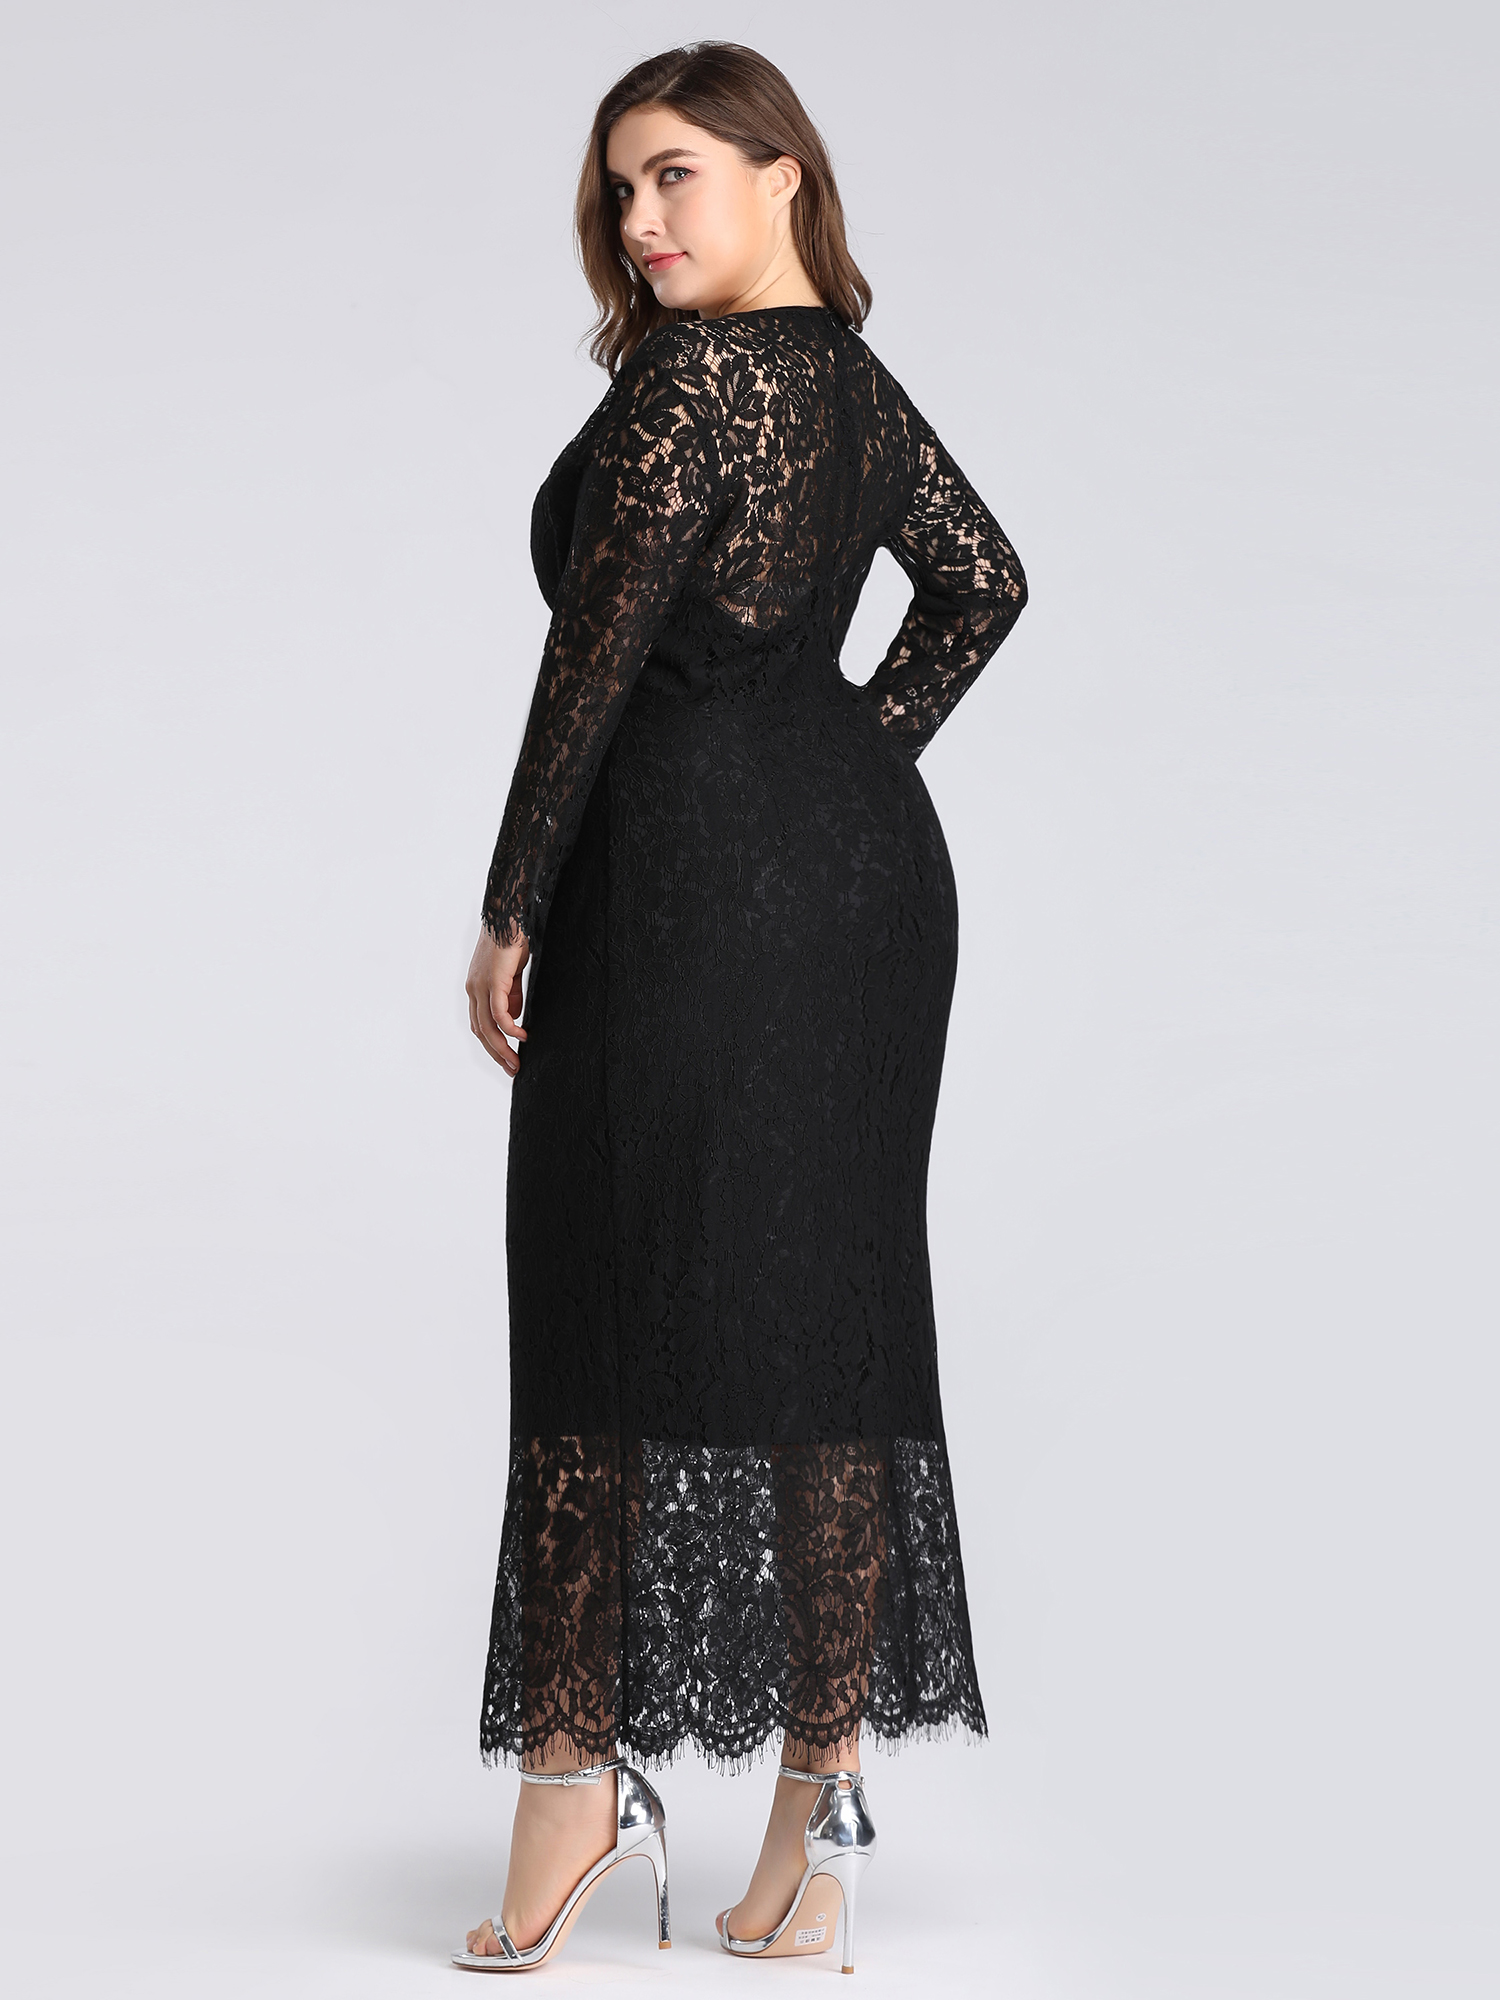 Ever-pretty-US-Plus-Size-Black-Lace-Long-Sleeve-Party-Dresses-Evening-Prom-Gowns thumbnail 9